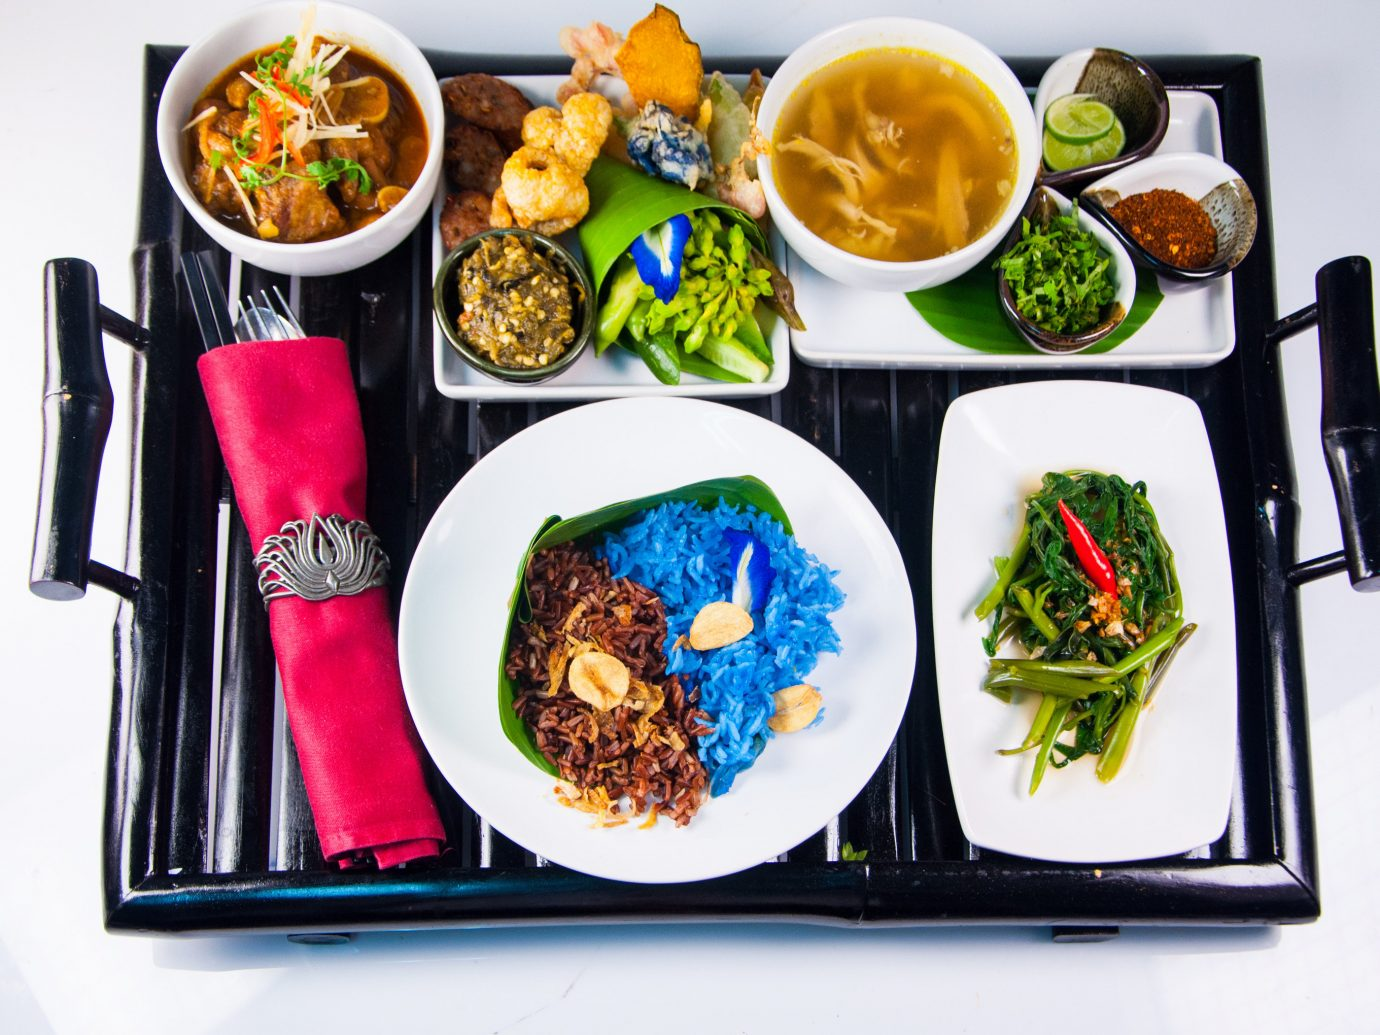 Romance Trip Ideas meal dish lunch food different several vegetable